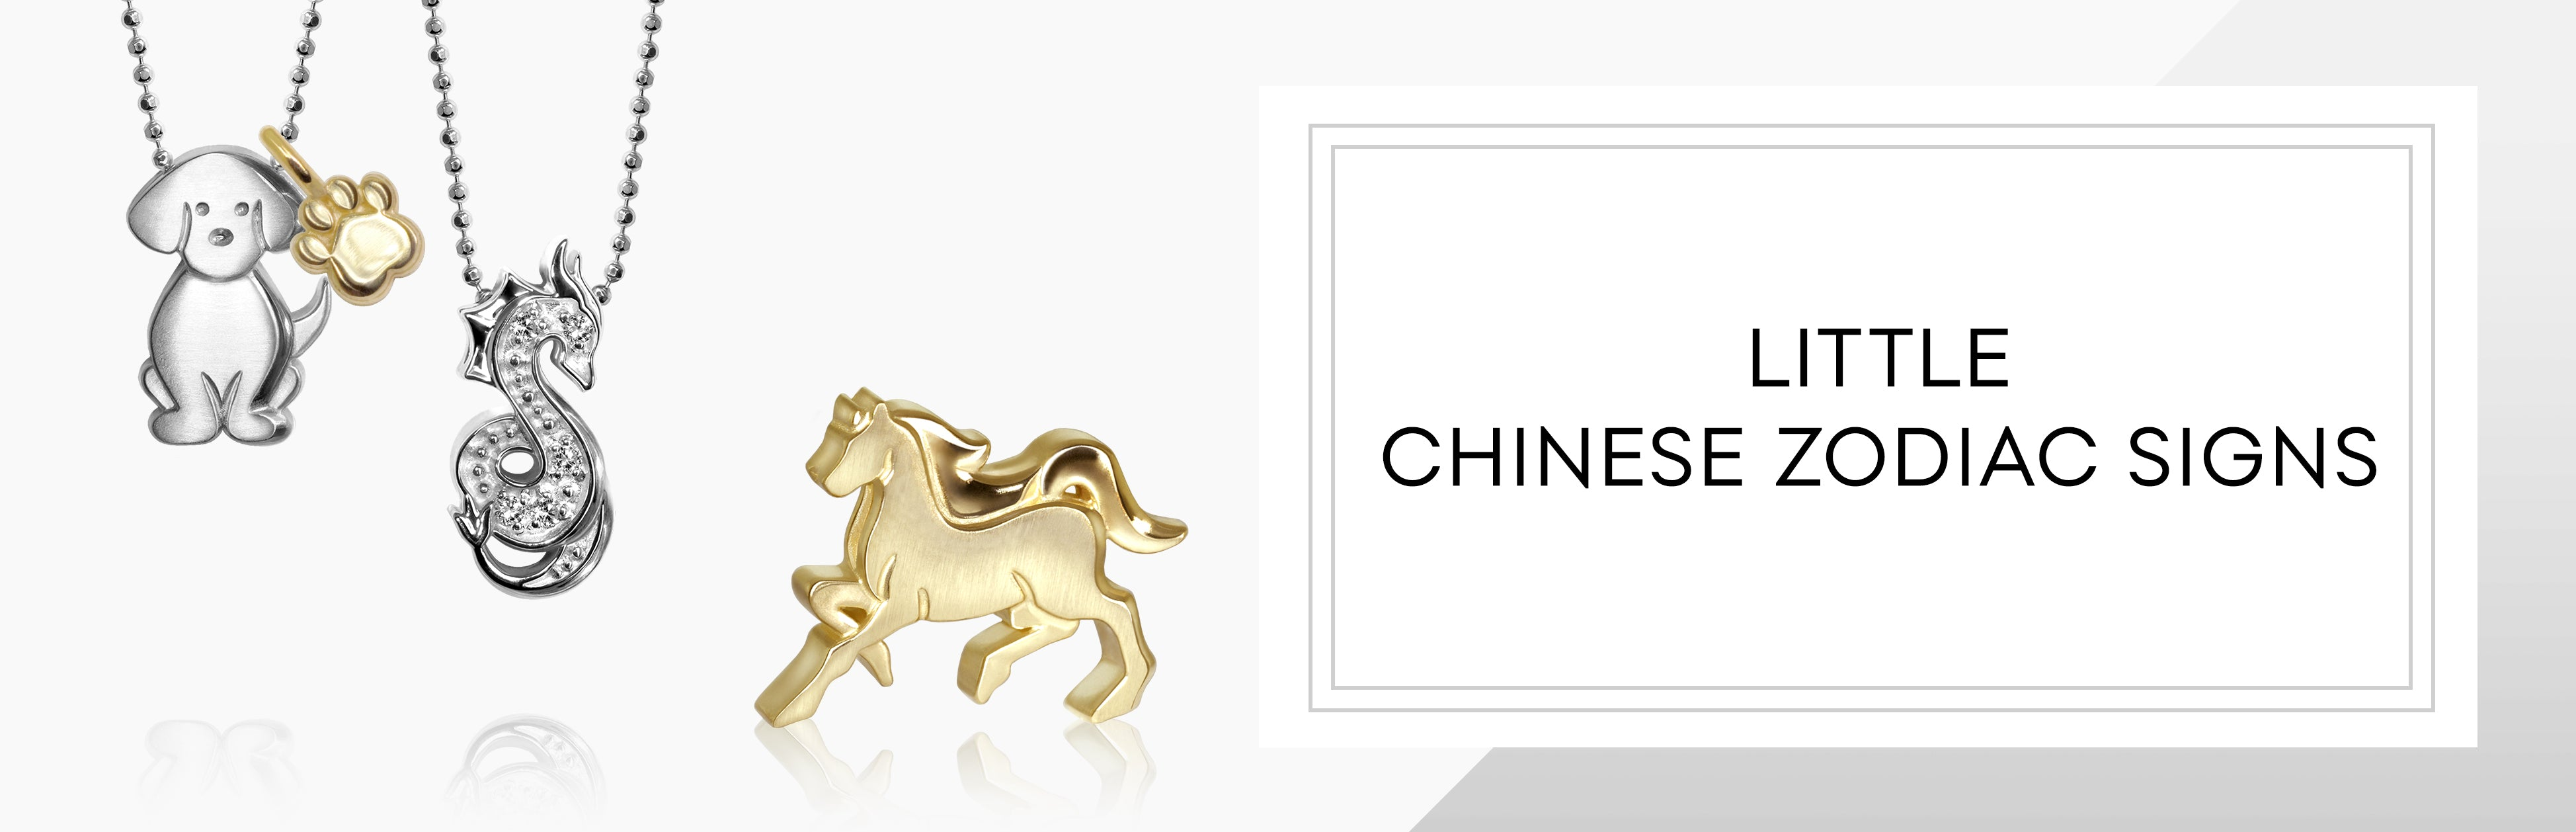 Little Chinese Zodiac Signs Alex Woo Jewelry